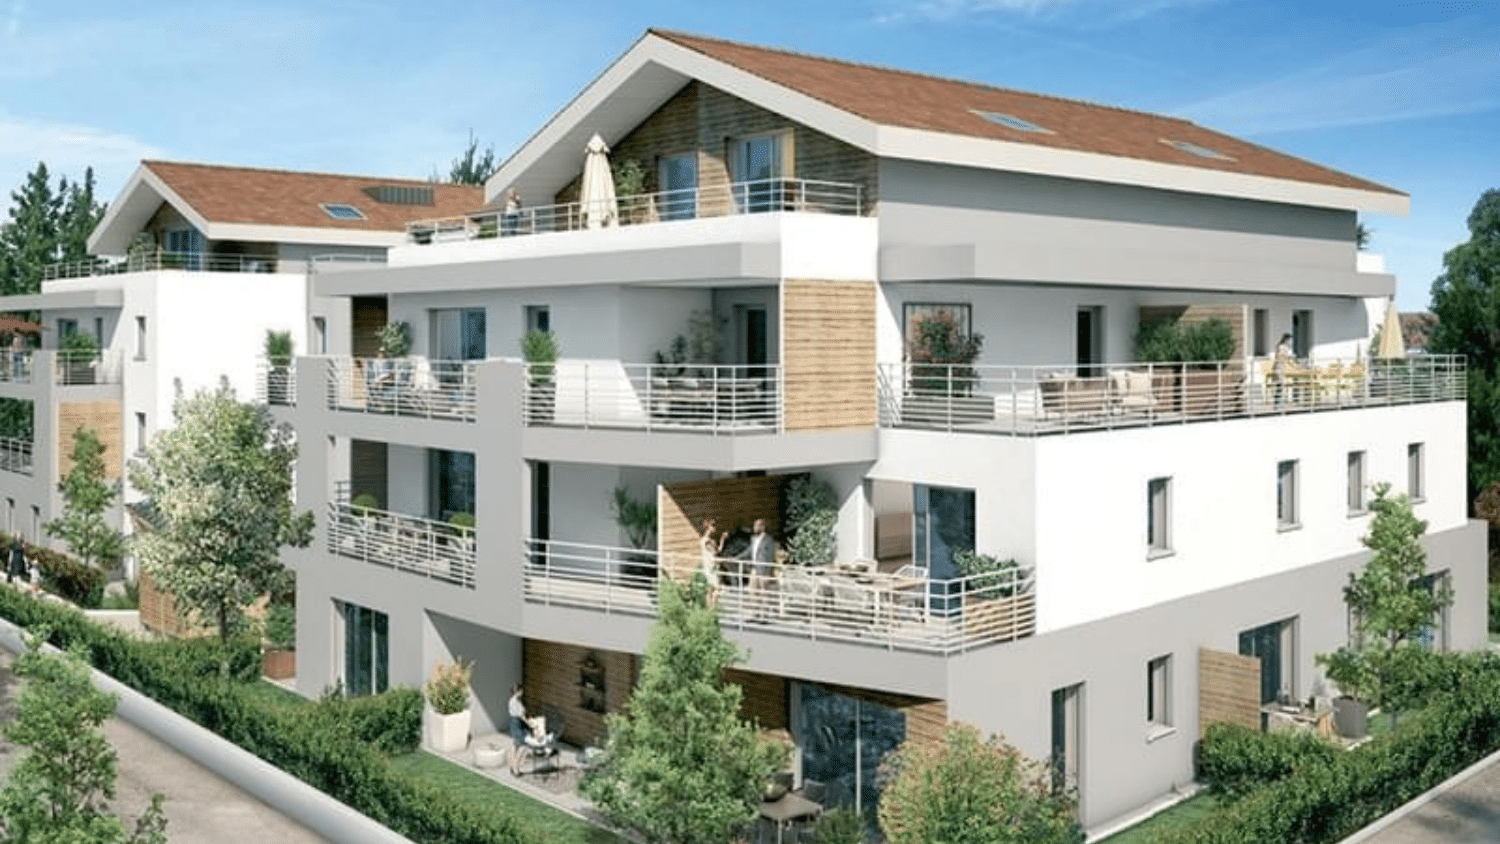 programmes immobiliers Ain à Prevessin-moens proche geneve